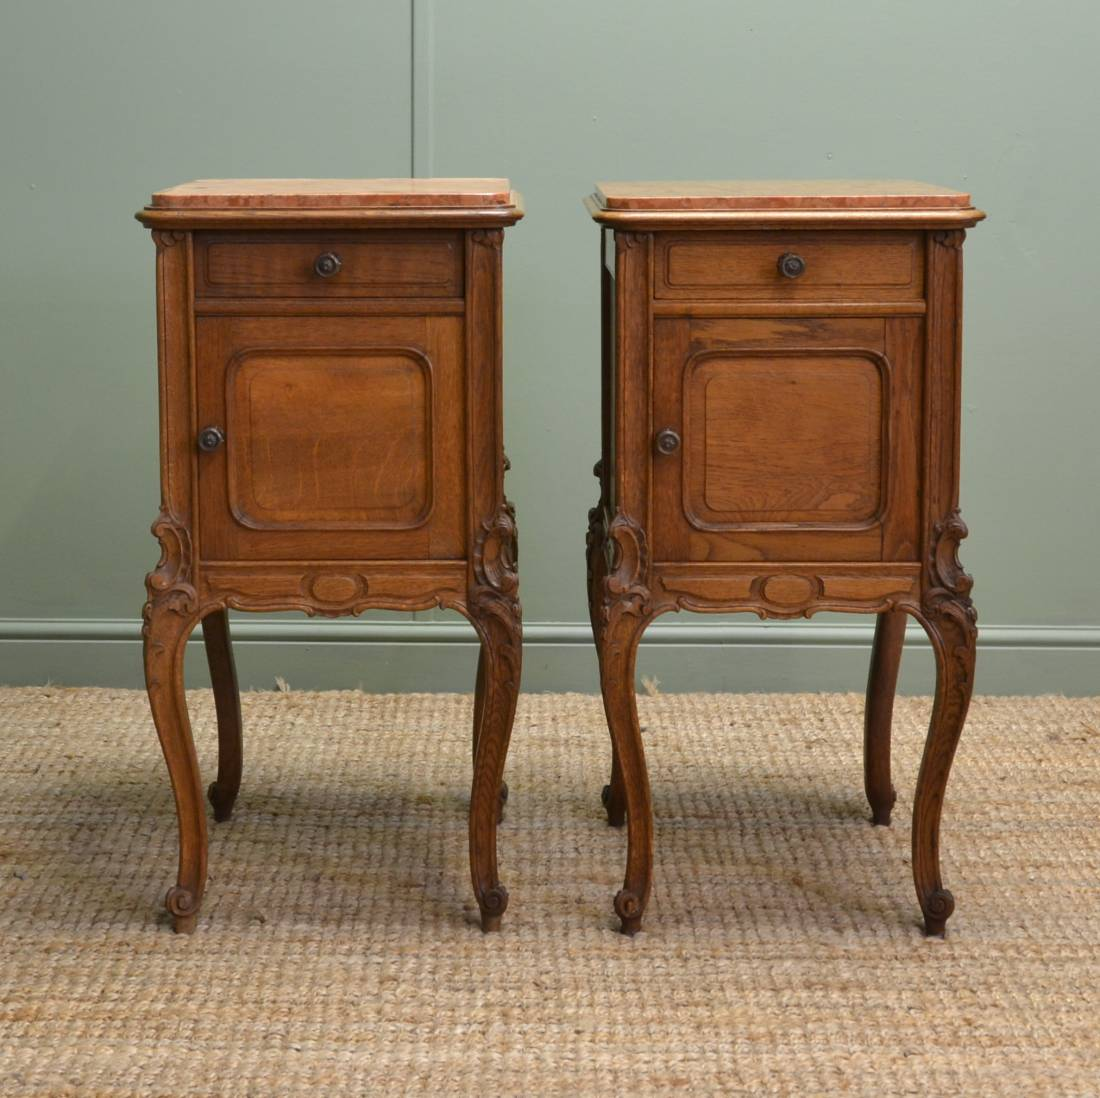 Antique Bedside Tables Antique Bedside Cabinets Antiques World